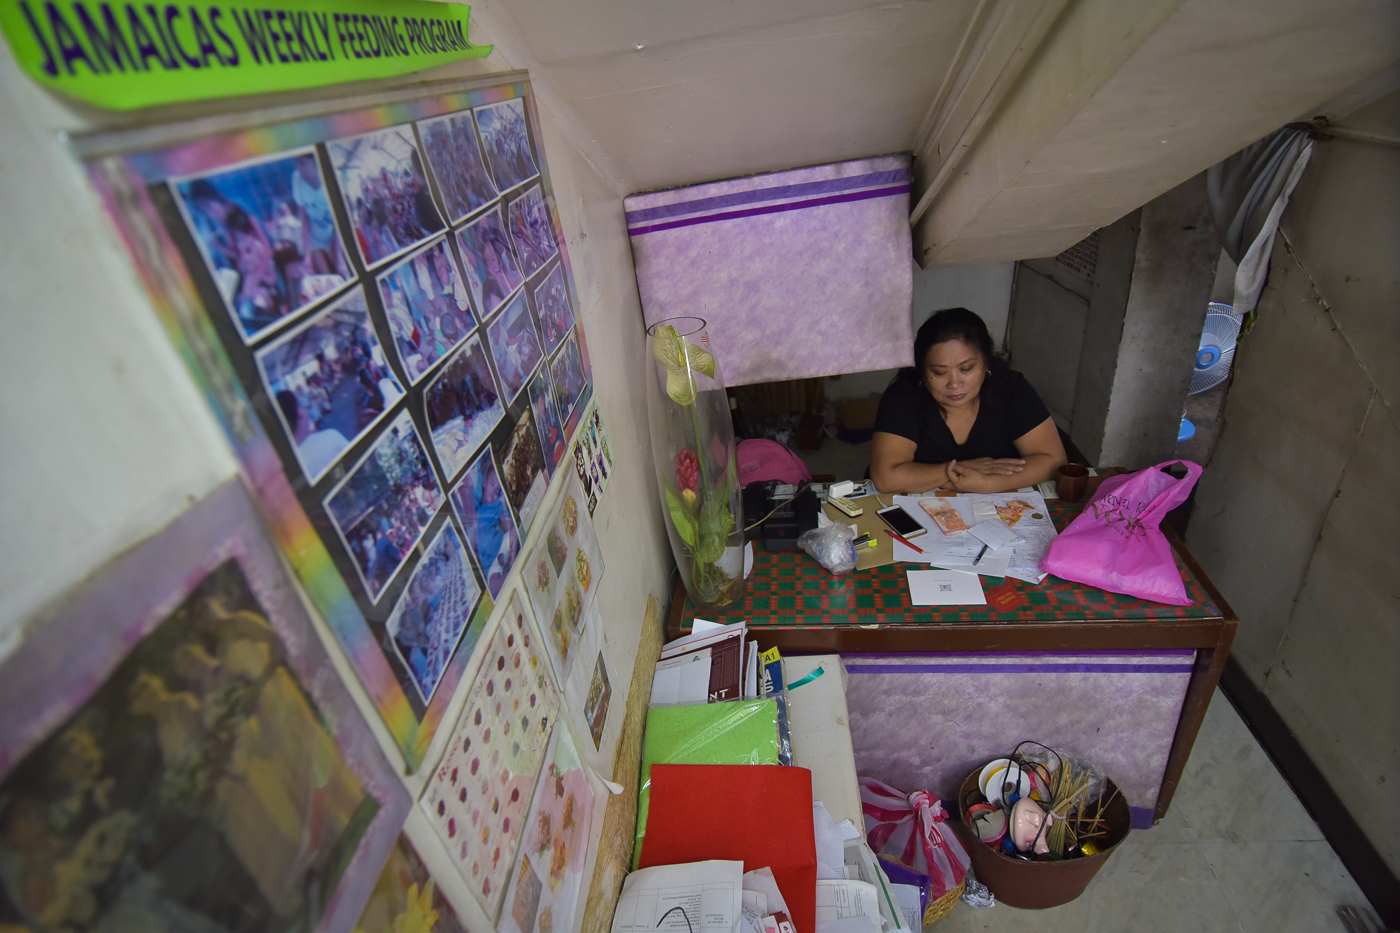 COLLATERAL DAMAGE. A tenant for 33 years, Josie Bigayan-Paad says the eviction will greatly affect her weekly feeding program and job security of her employees. Photo by LeAnne Jazul/Rappler